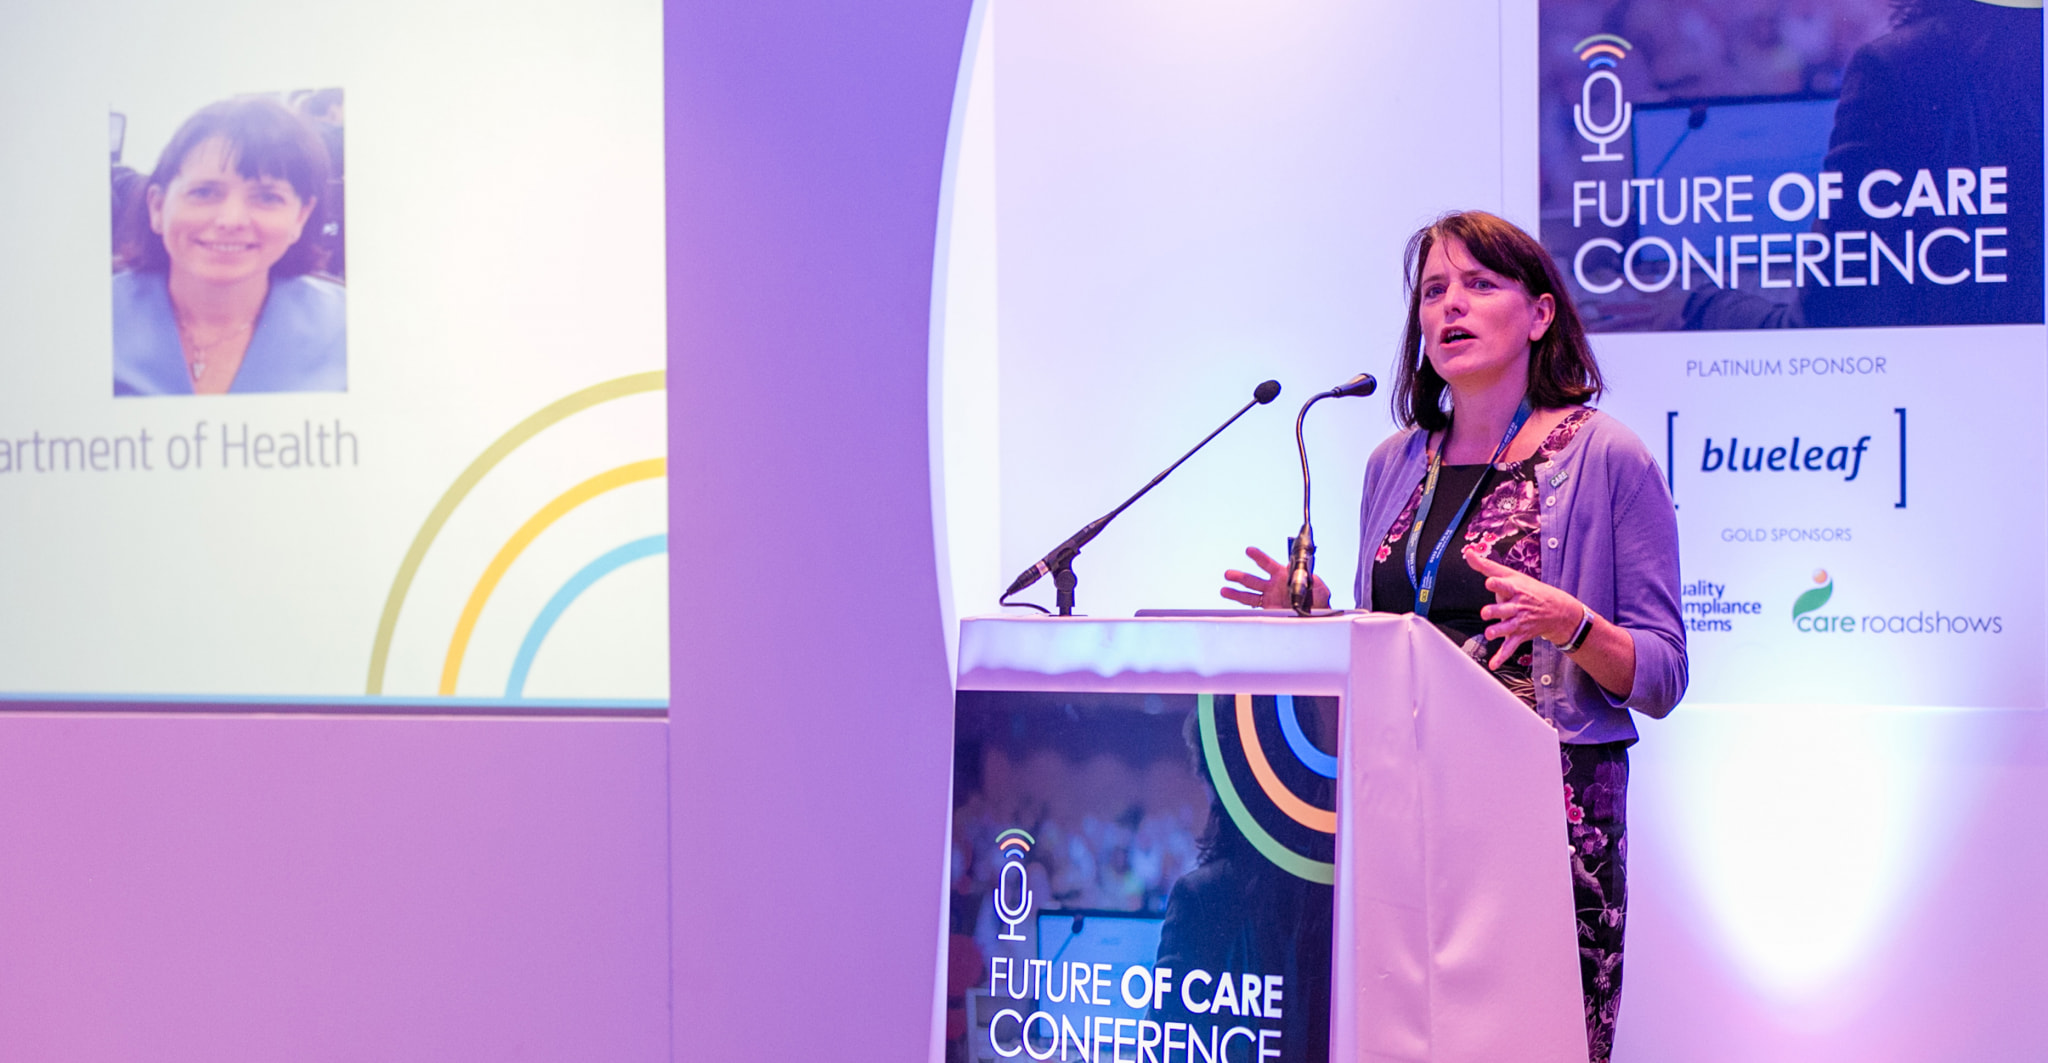 Future of Care PR